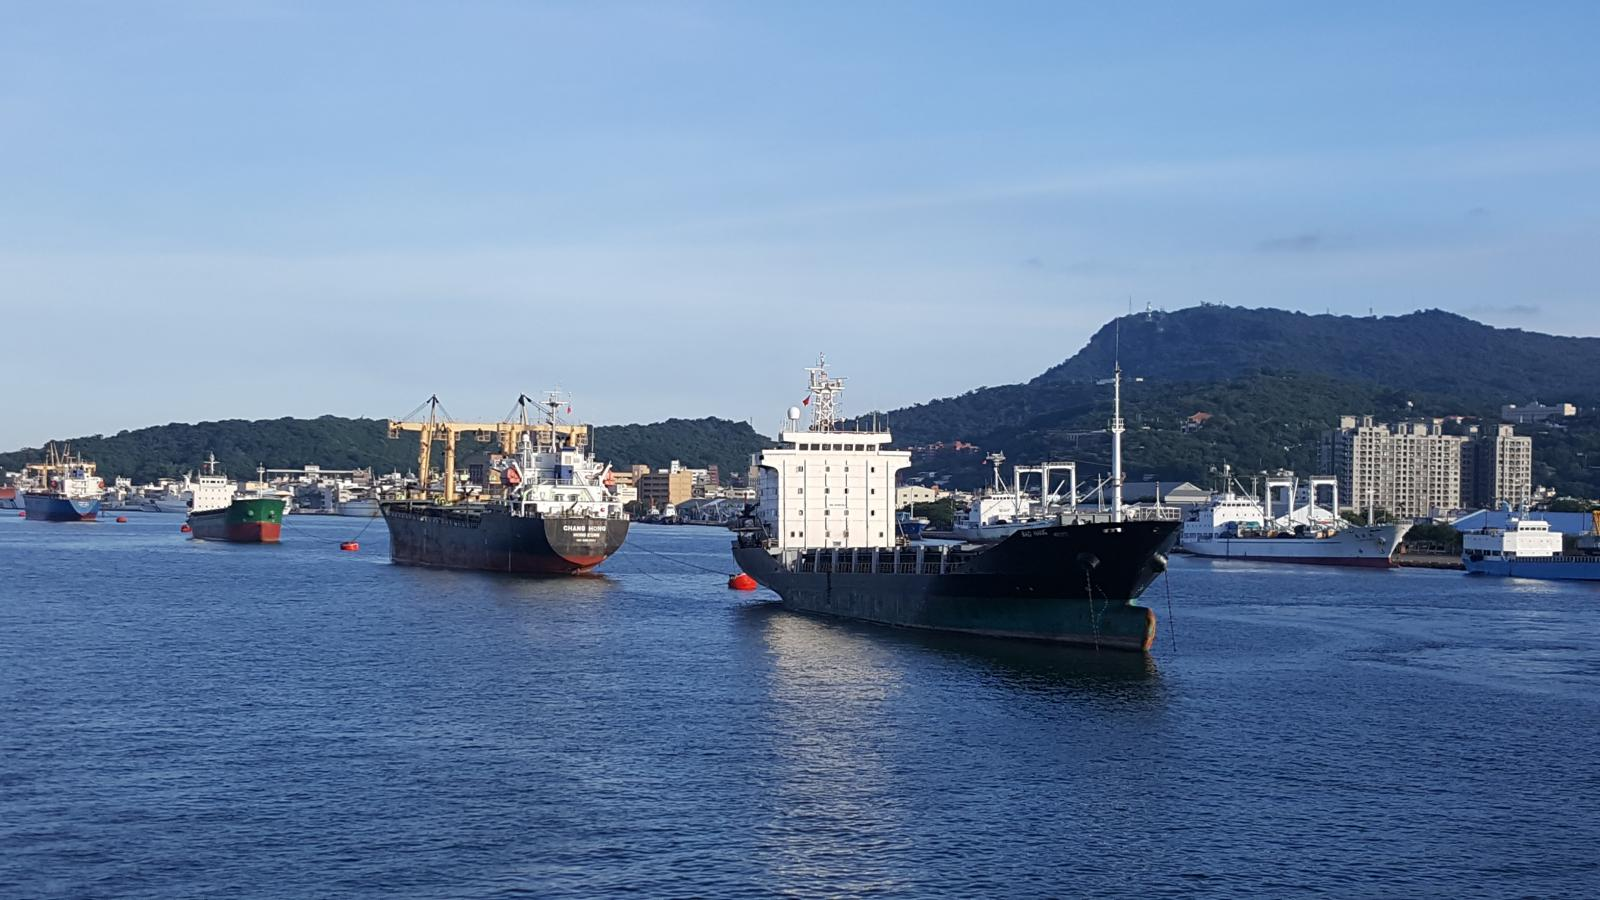 Ships tied-up to the Mooring Buoys in Kaohsiung